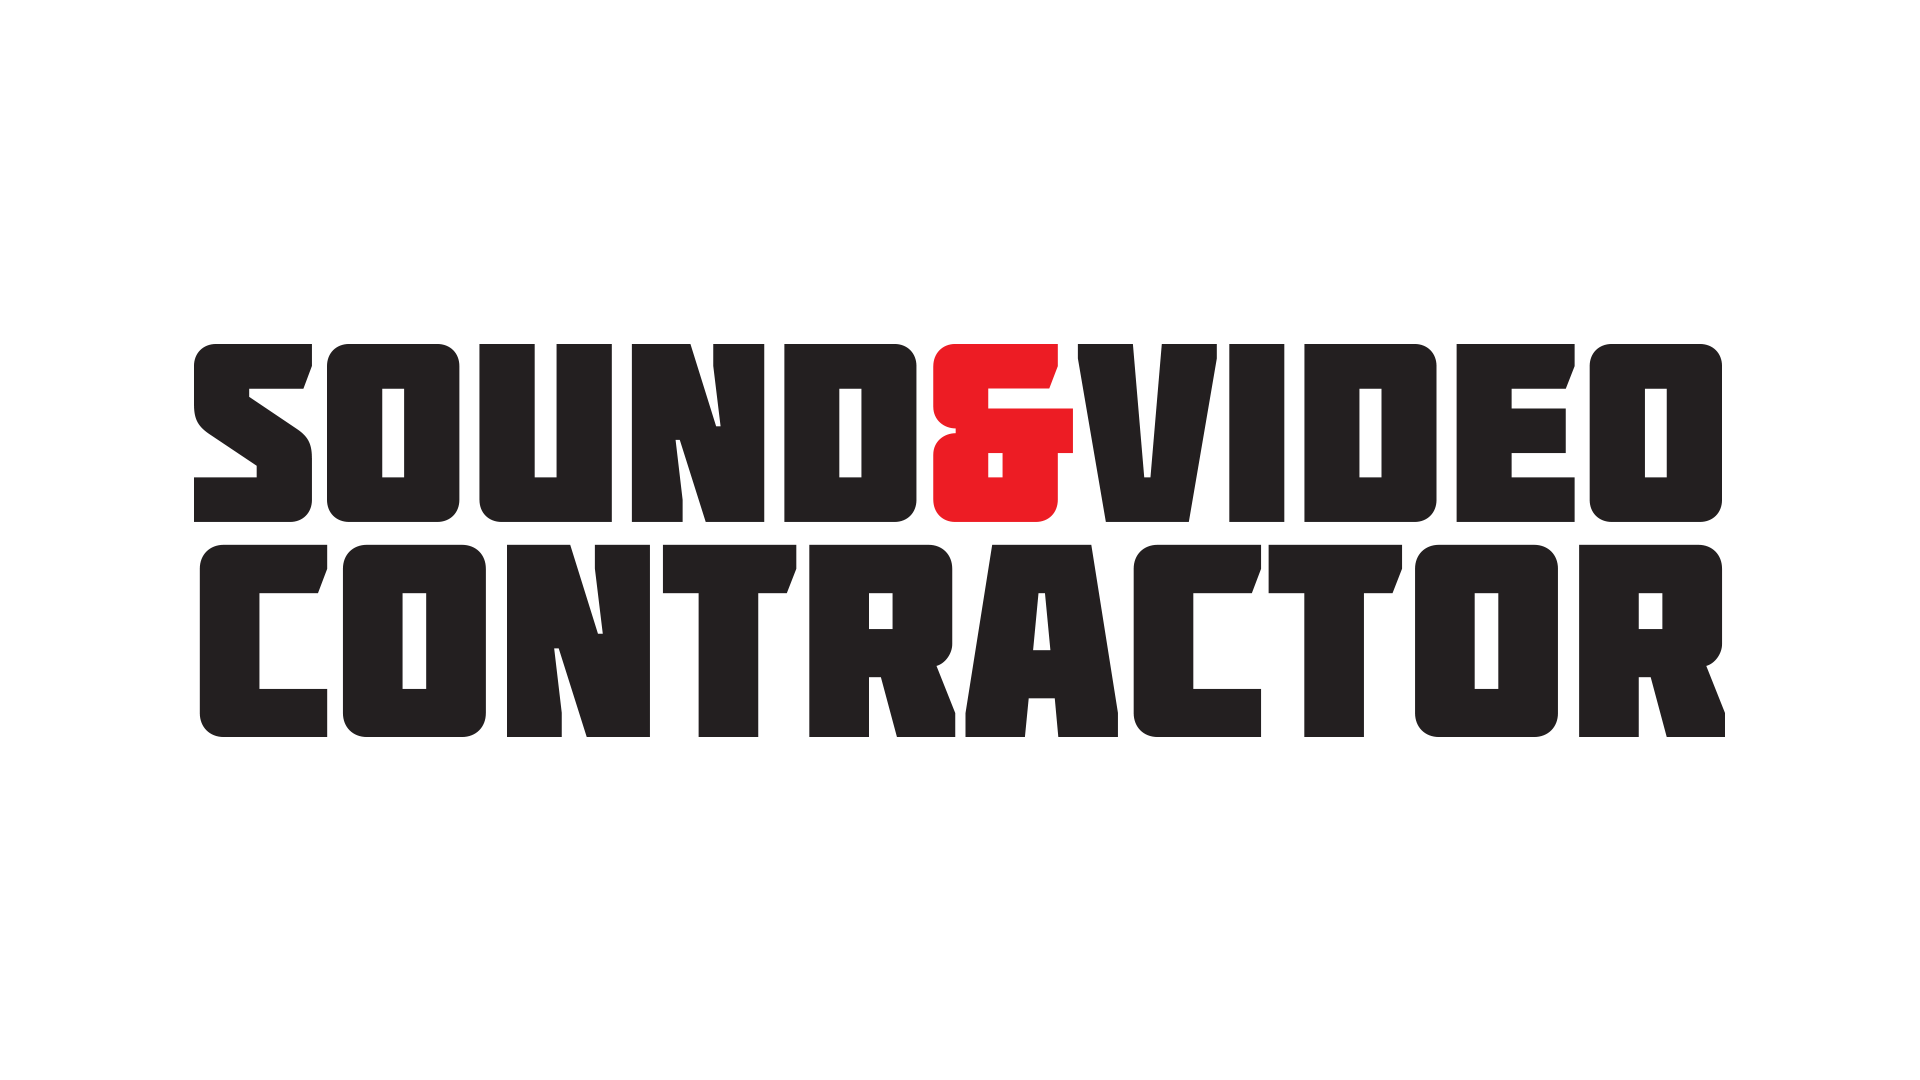 Sound & Video Contractor